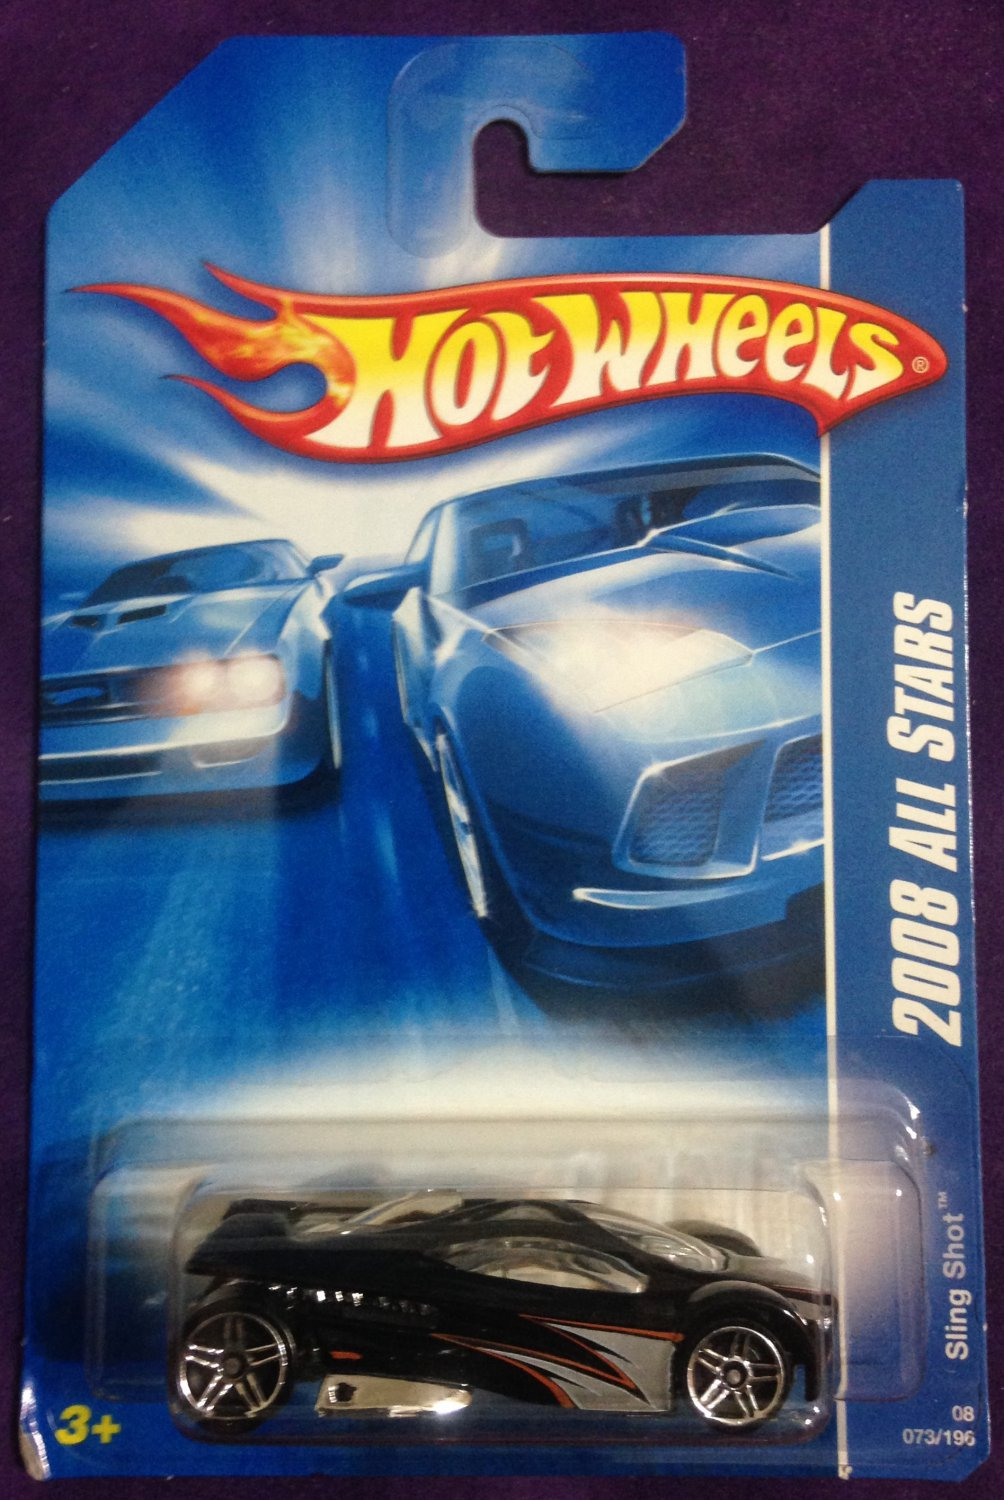 2008 Hot Wheels #73 Sling Shot